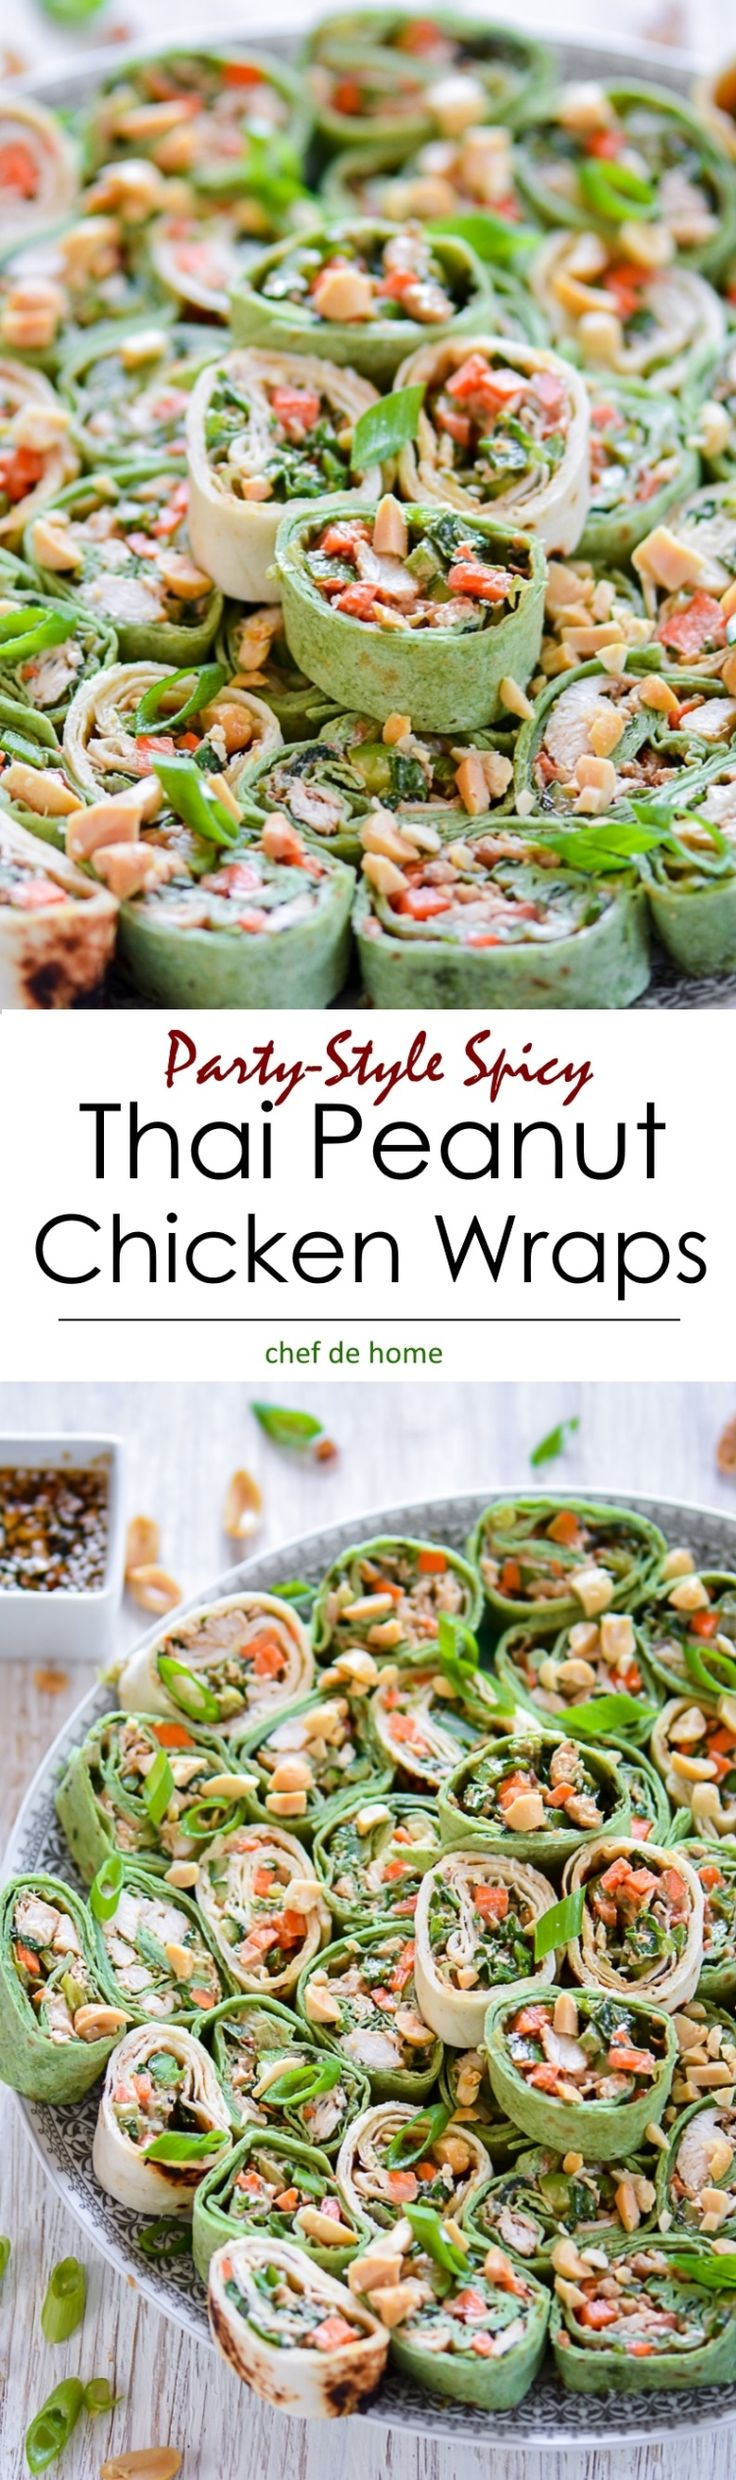 Thai Peanut Chicken Wraps , a 25 minute recipe pack delicious chicken wraps for picnic or cut and serve pinwheel bites for #4thjuly party!